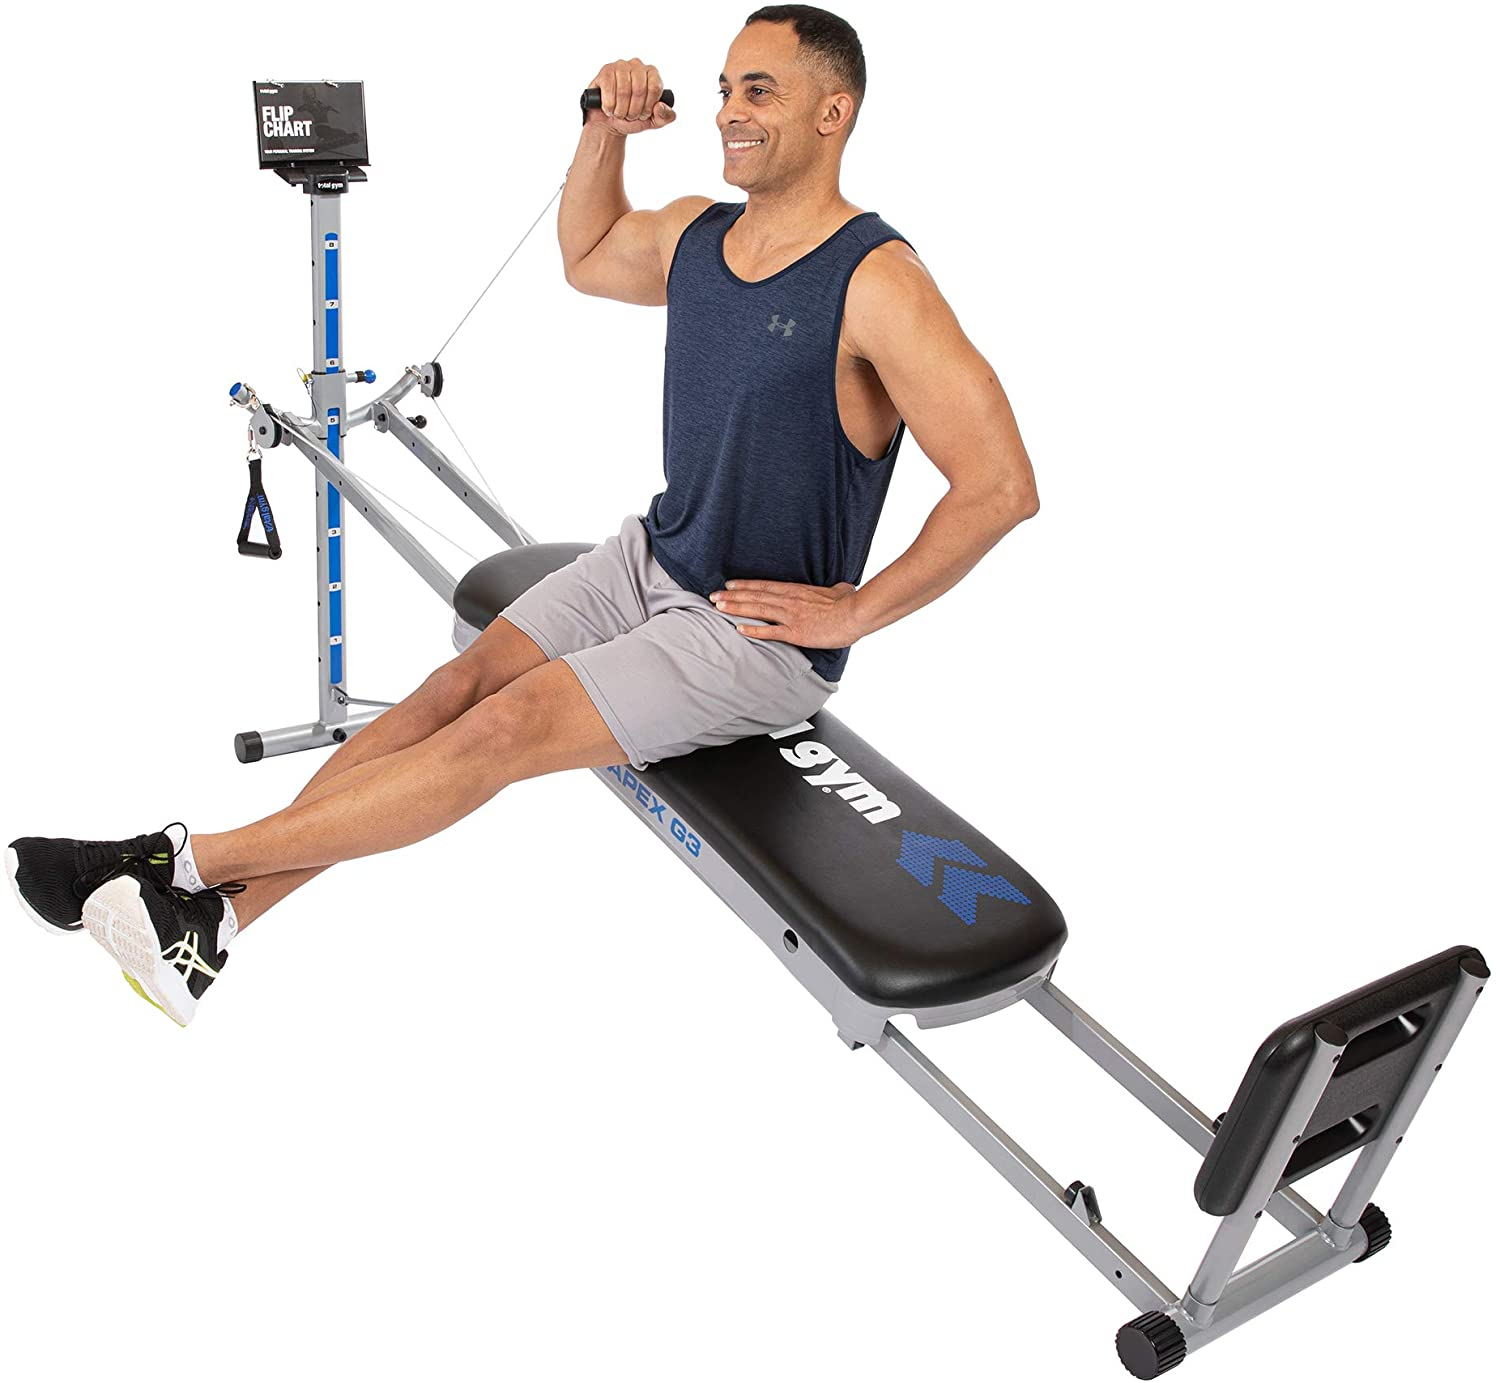 Total Gym APEX G3 Versatile Indoor Home Workout Total Body Strength  Training Fitness Equipment with 8 Levels of Resistance and Attachments -  Walmart.com - Walmart.com